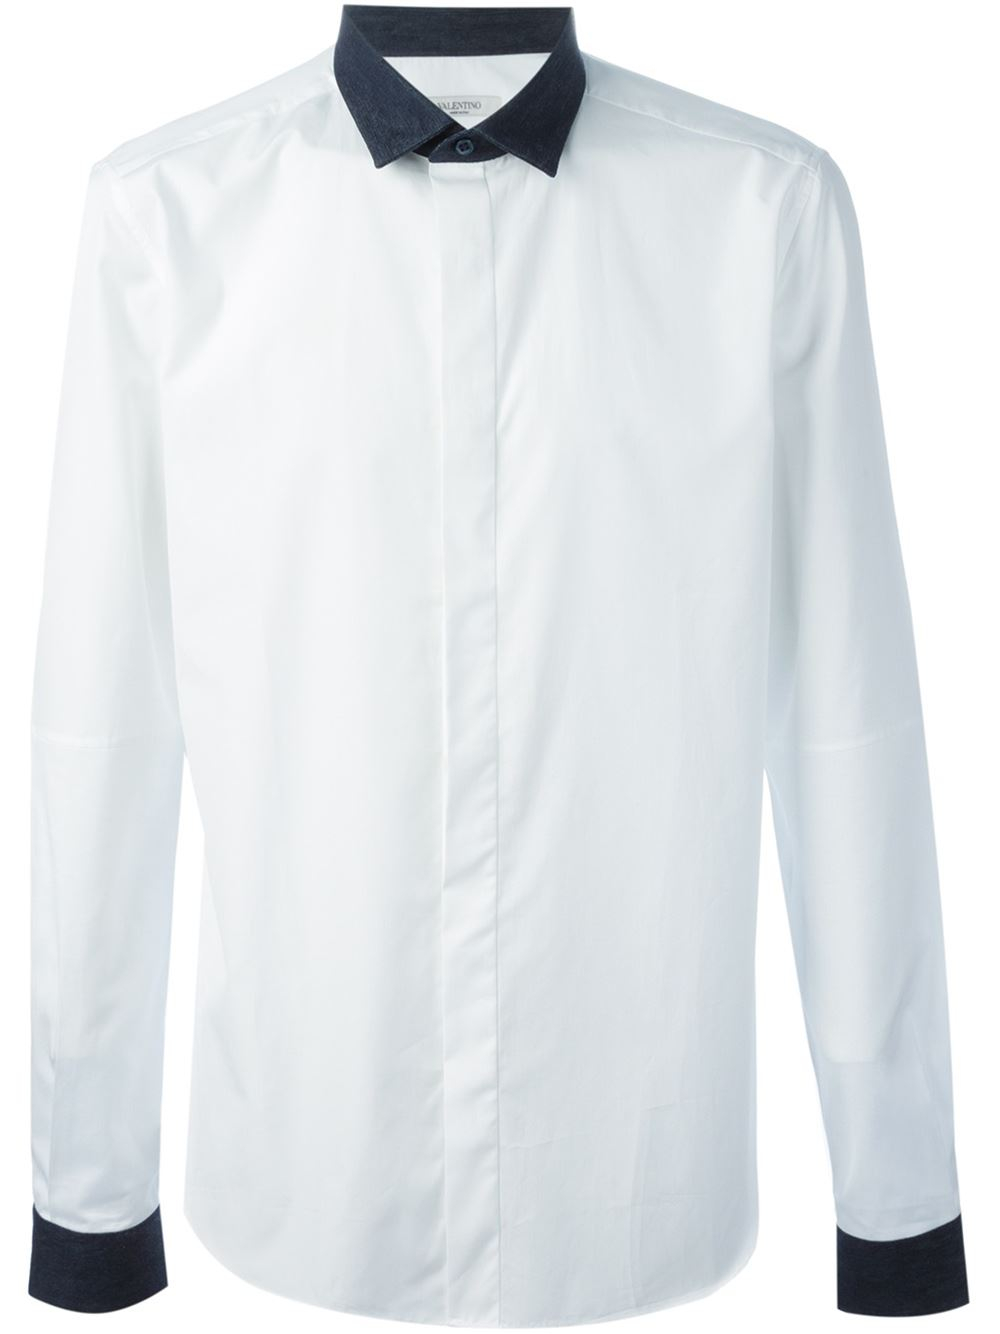 Lyst valentino contrasting collar and cuff shirt in for Mens dress shirts with contrasting collars and cuffs